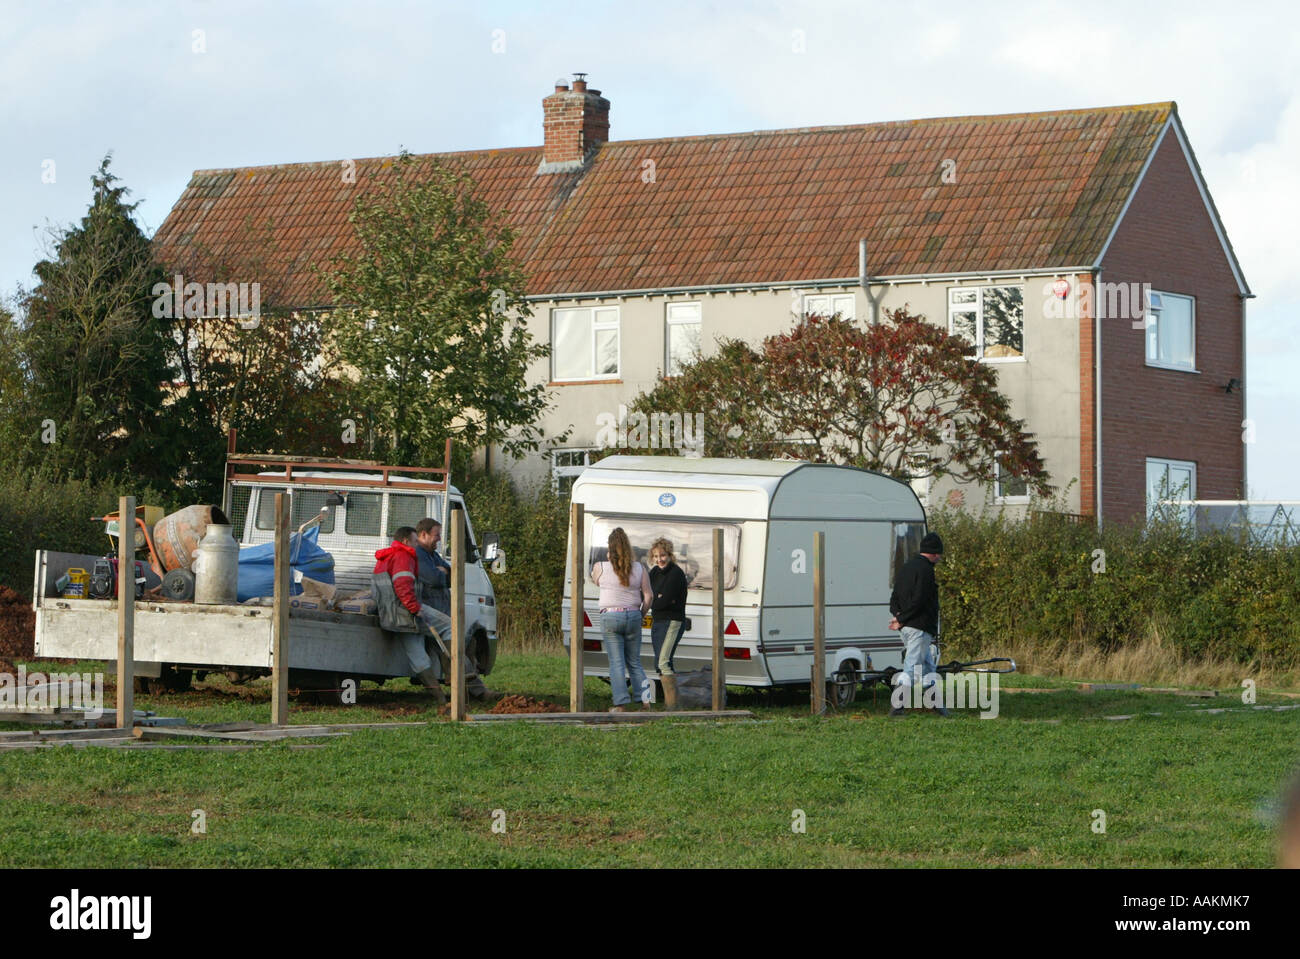 GYPSY TRAVELLERS SET UP A ILLEGAL CAMP IN FRONT OF HOUSES ON A SITE IN NORTH CURRY SOMERSET, ENGLAND Stock Photo